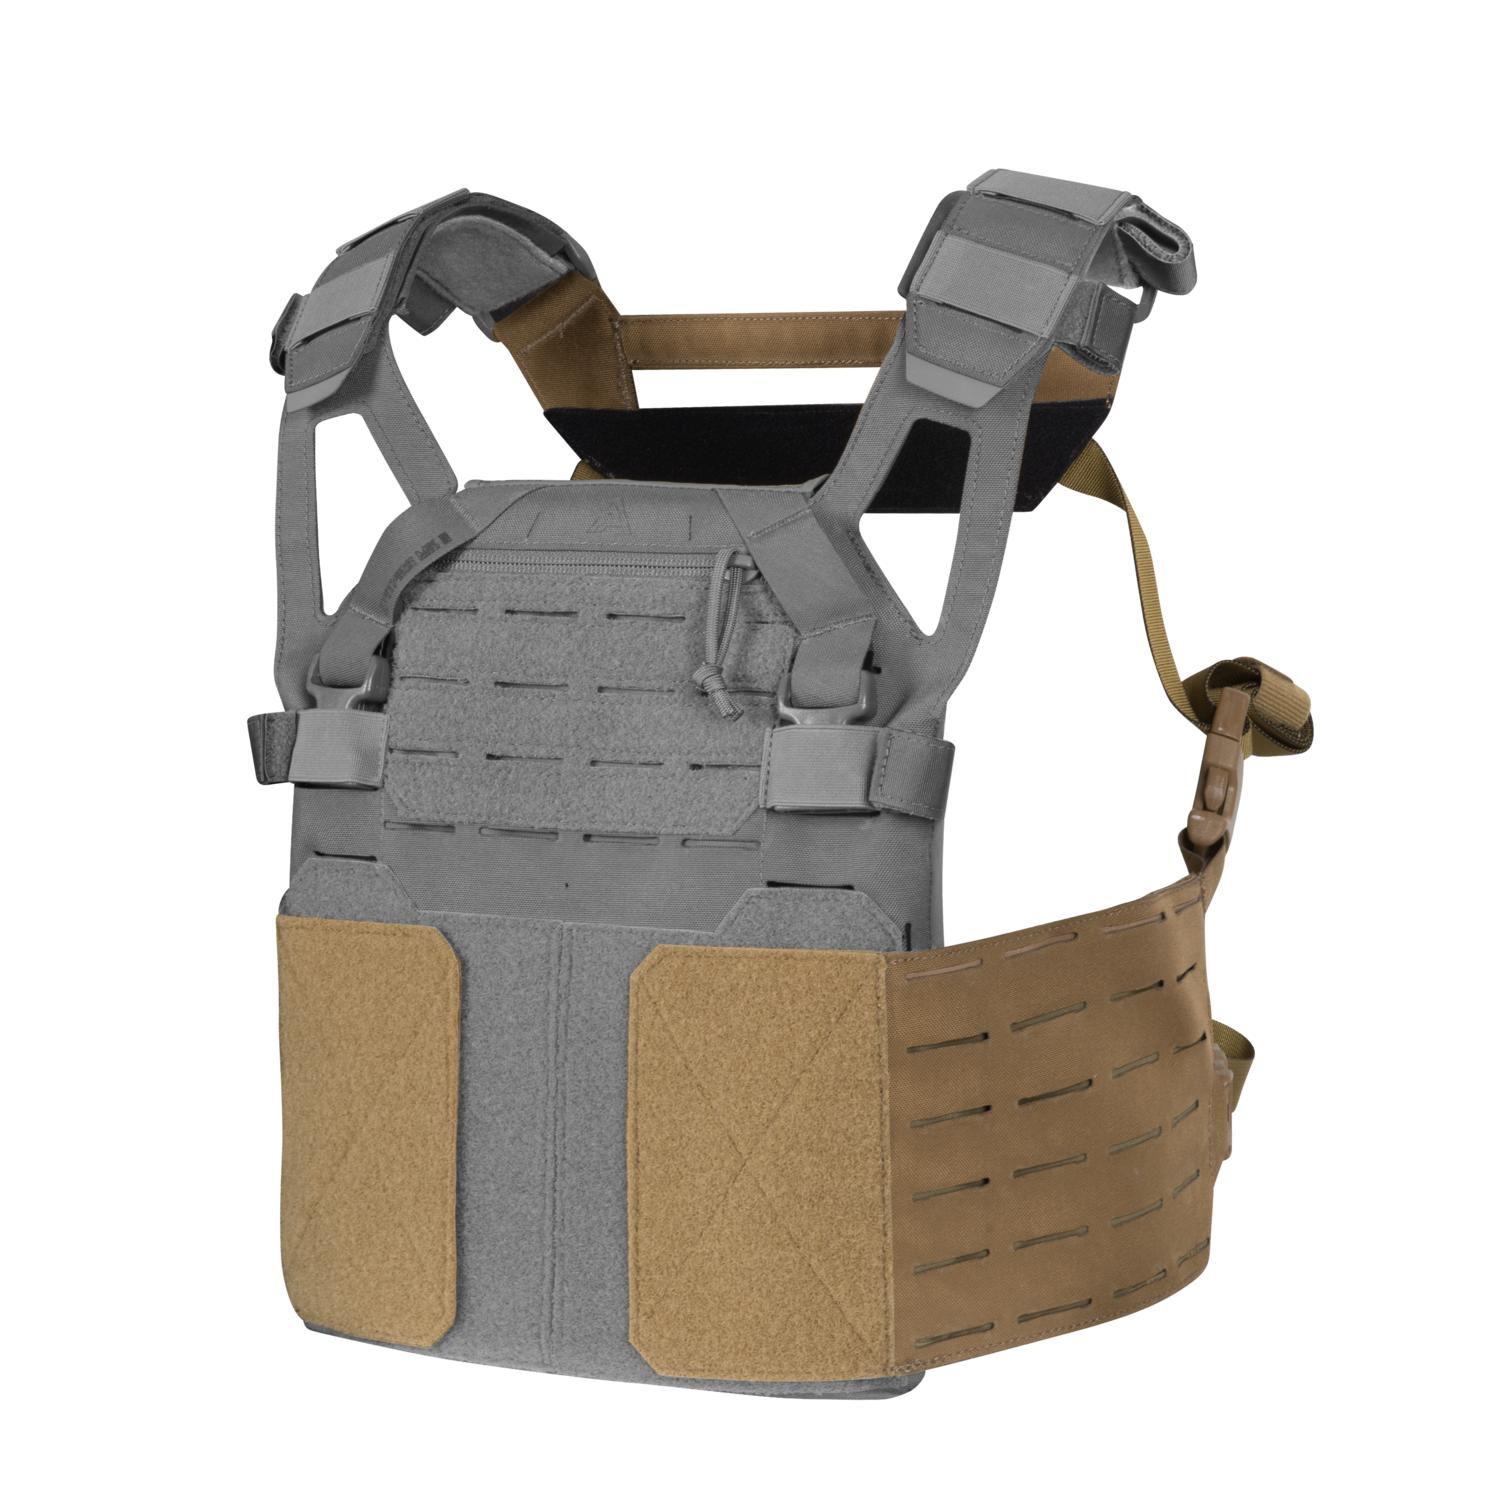 SPITFIRE MK II Chest Rig Interface®